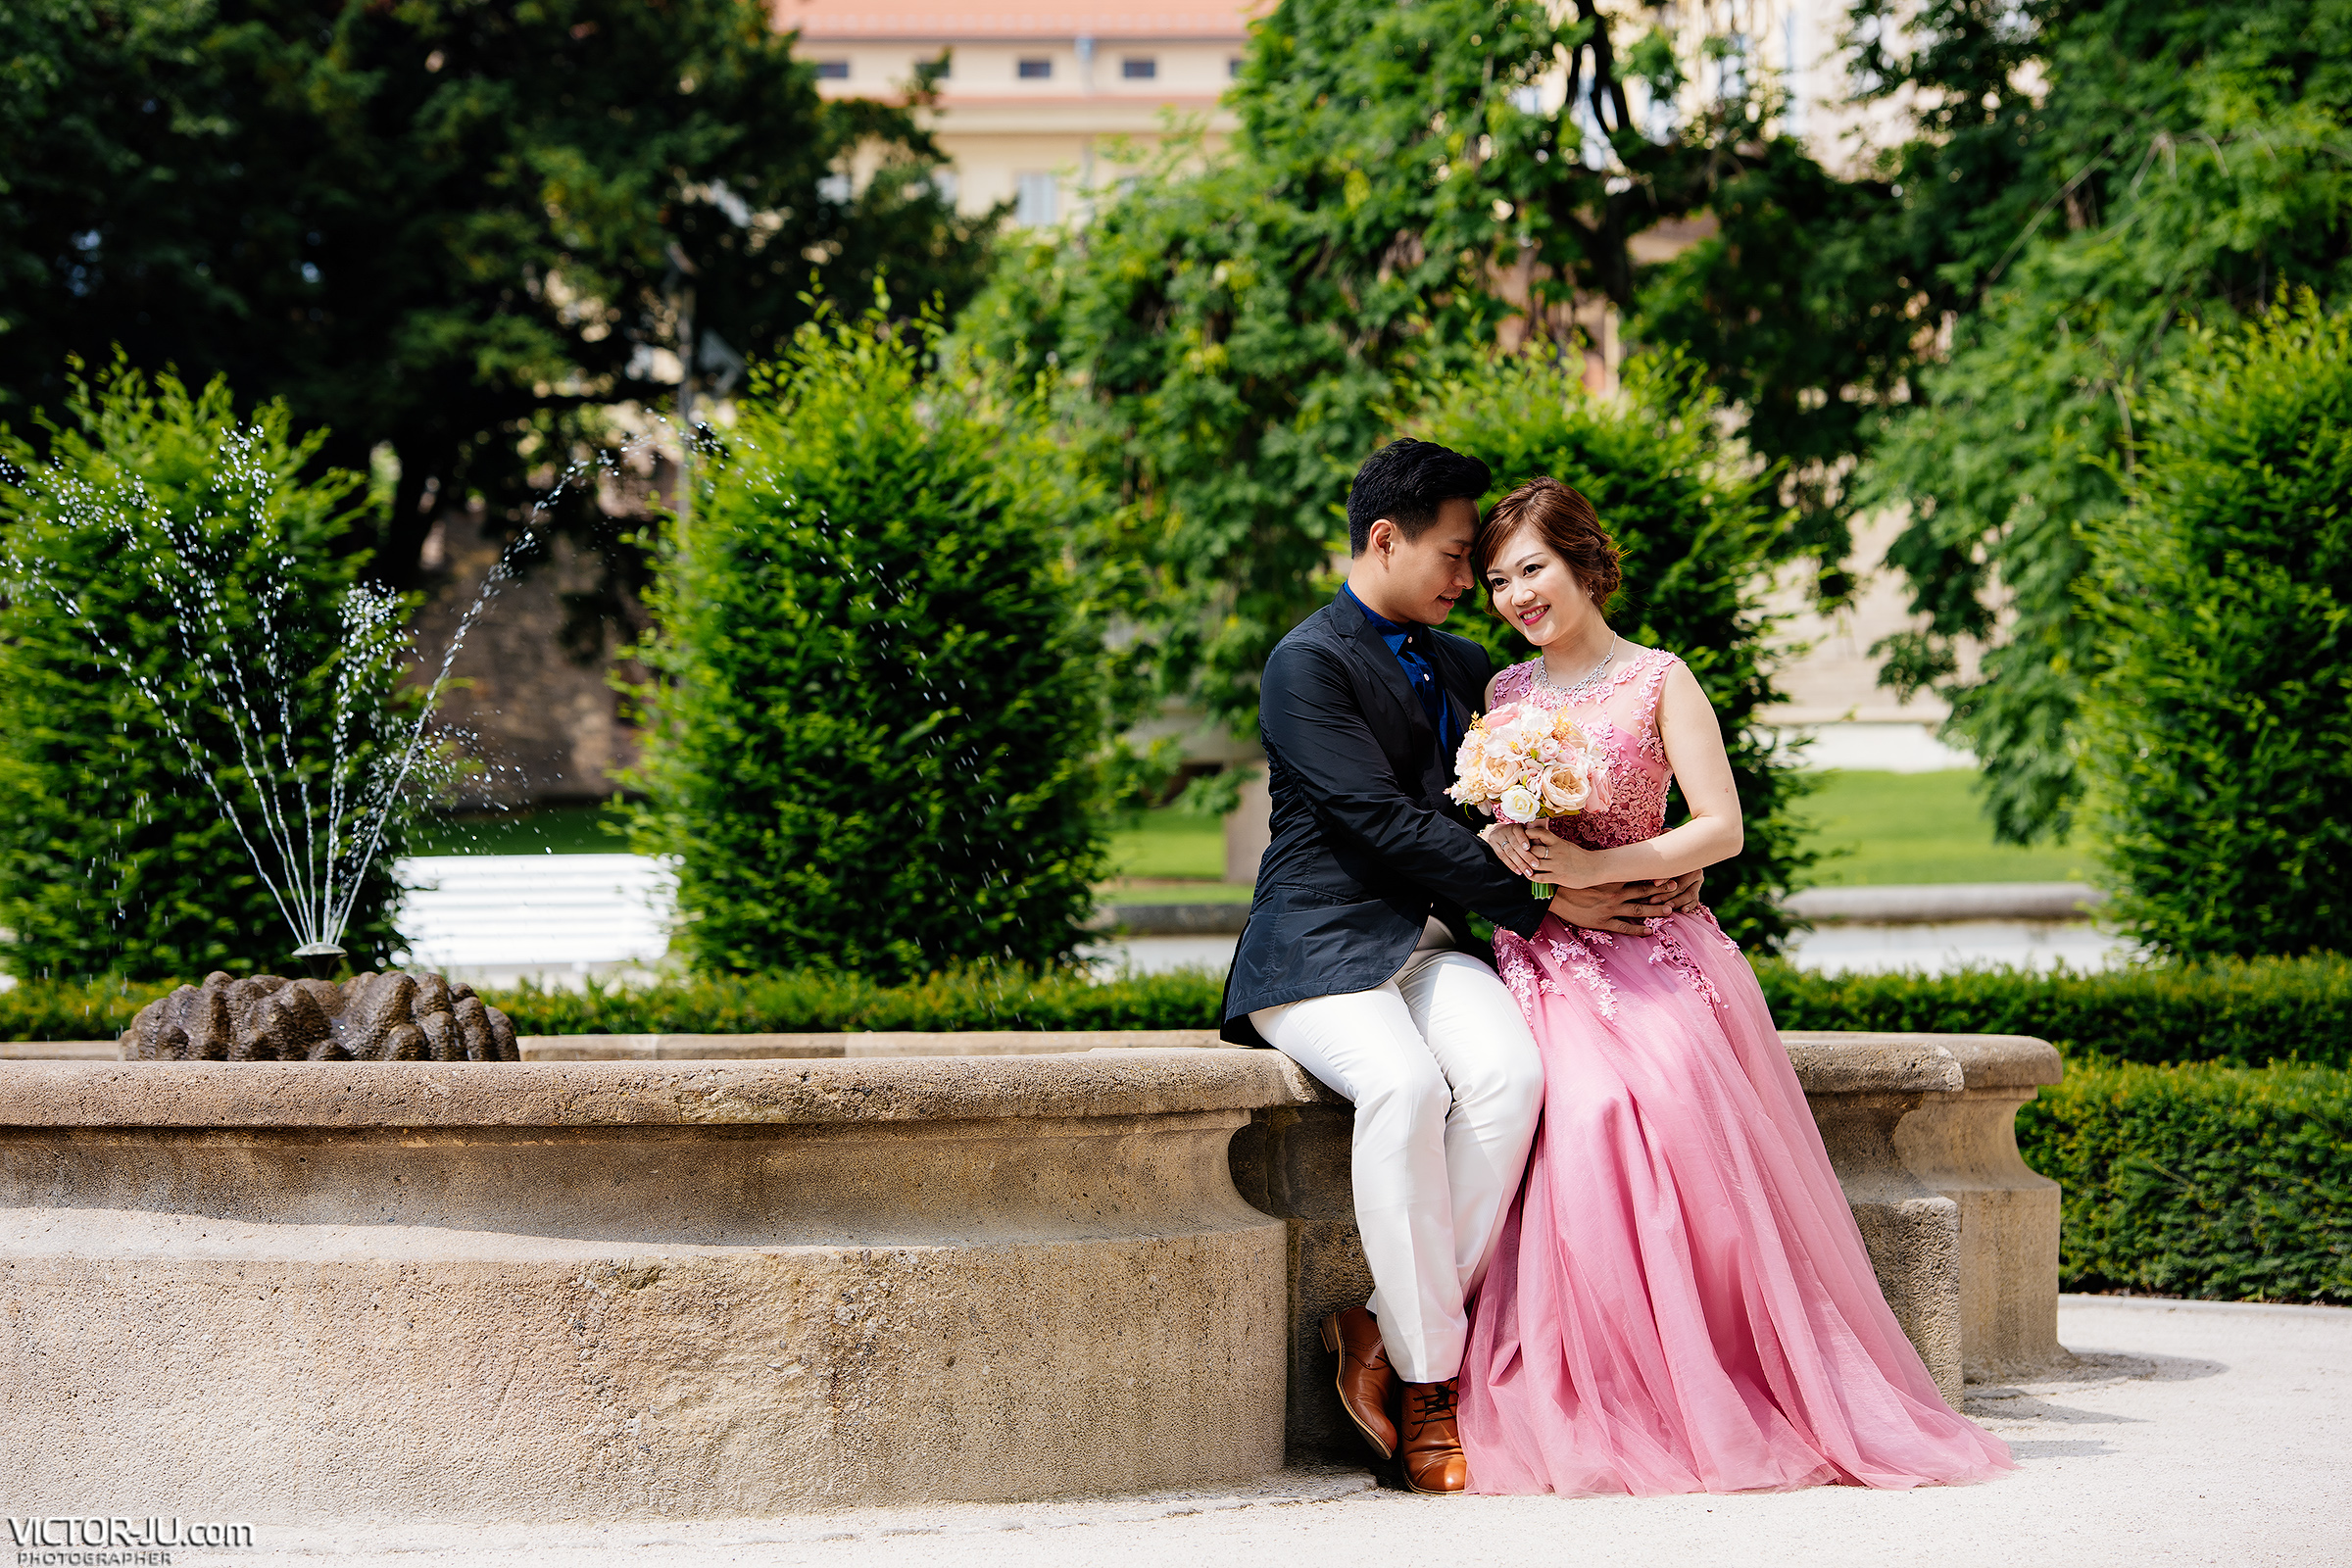 Photoshoot in the Garden of Prague Castle